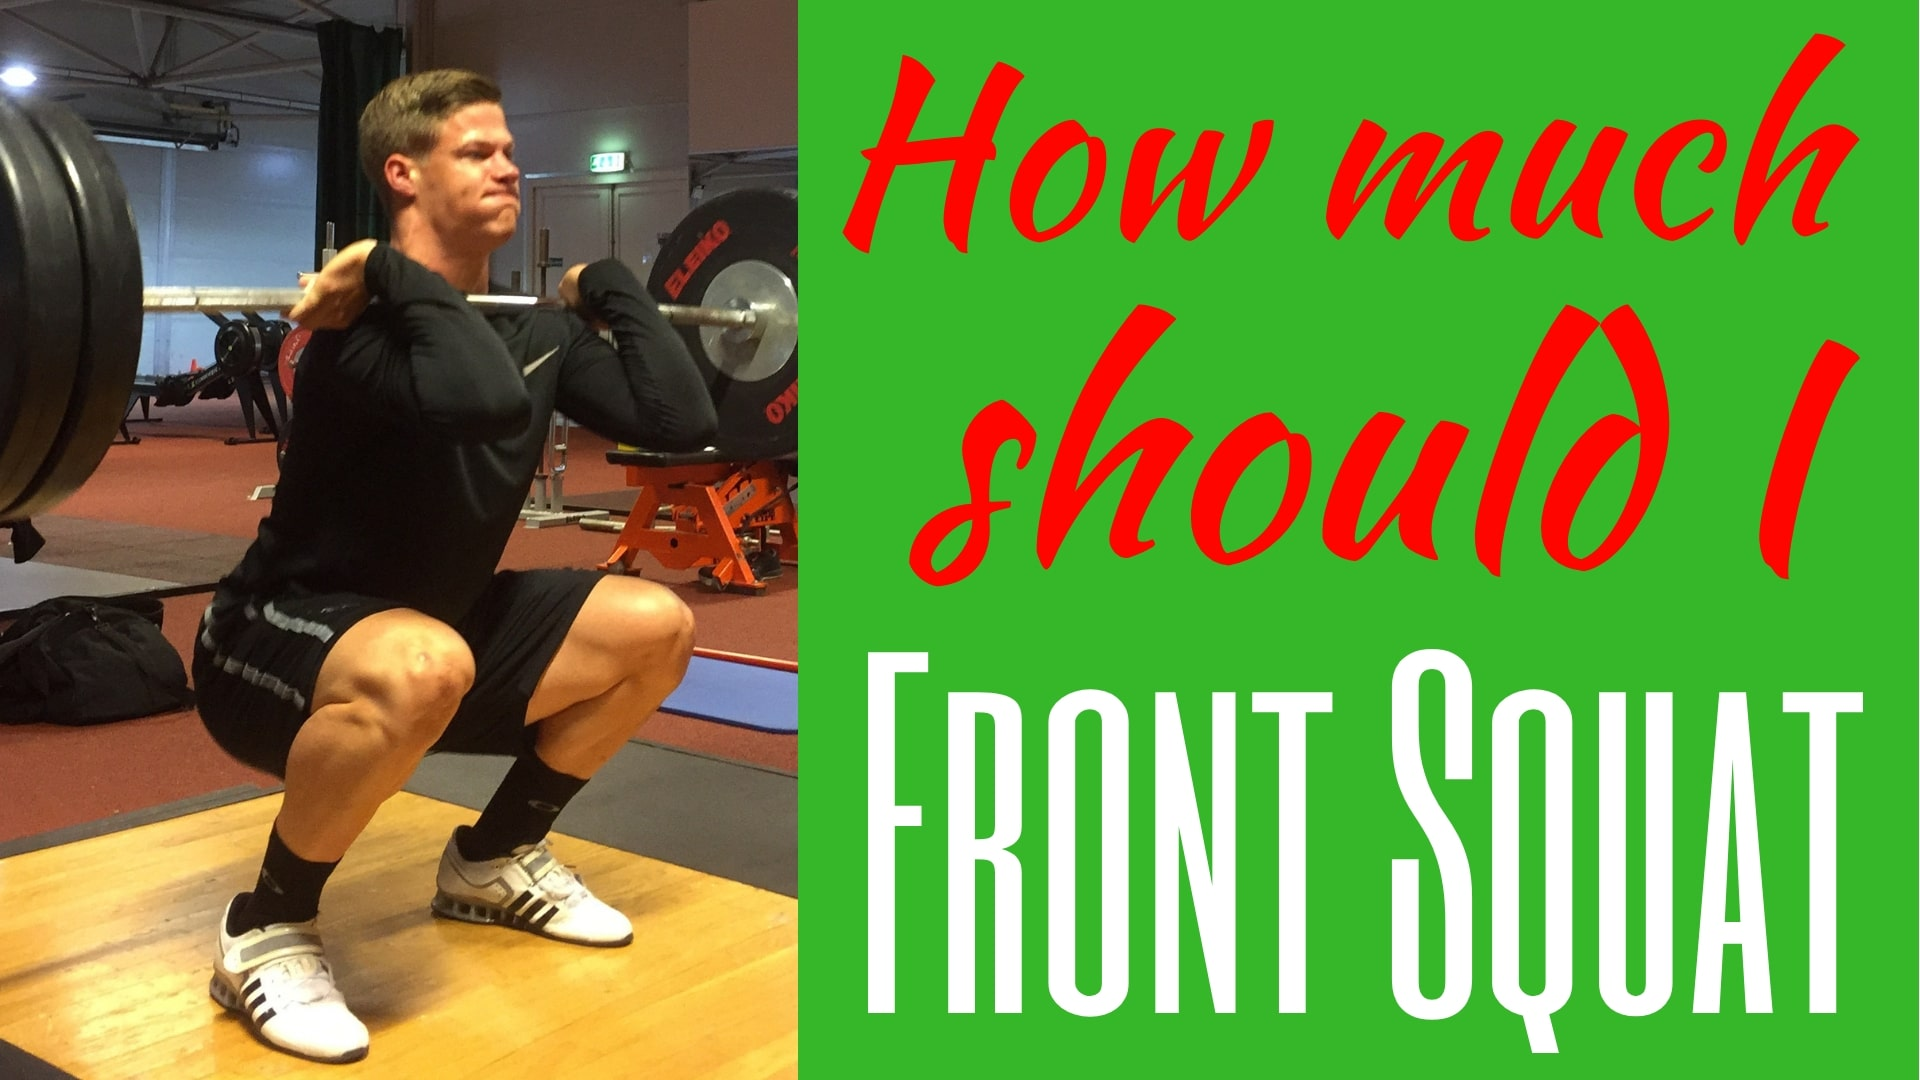 How-much-should-I-be-able-to-Front-Squat